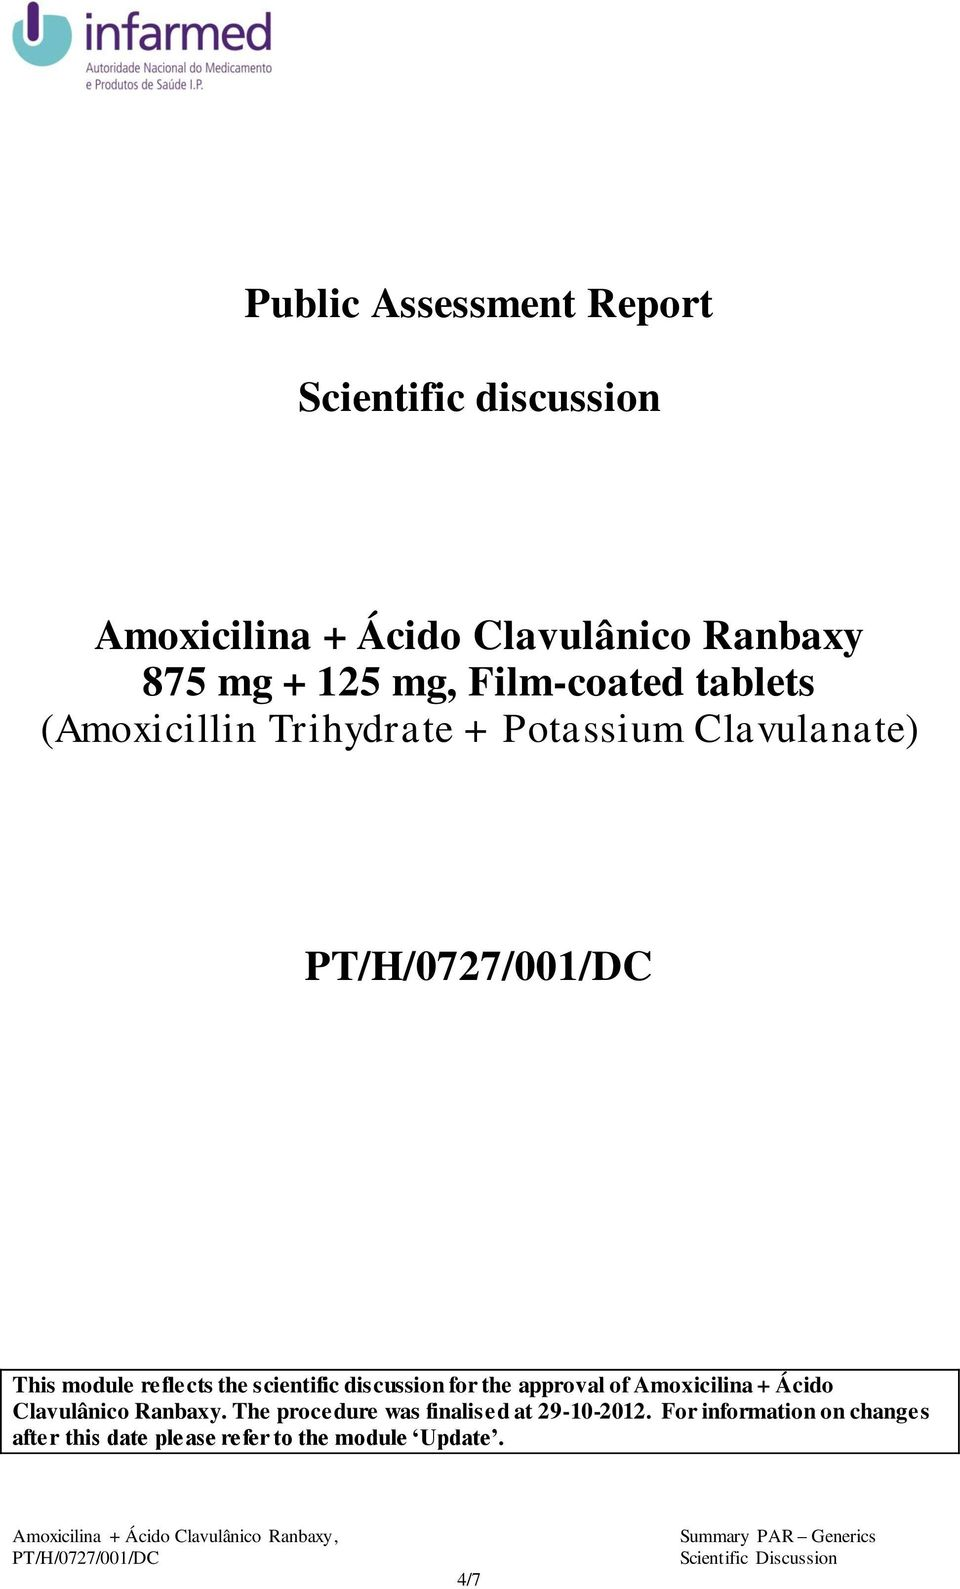 scientific discussion for the approval of Amoxicilina + Ácido Clavulânico Ranbaxy.